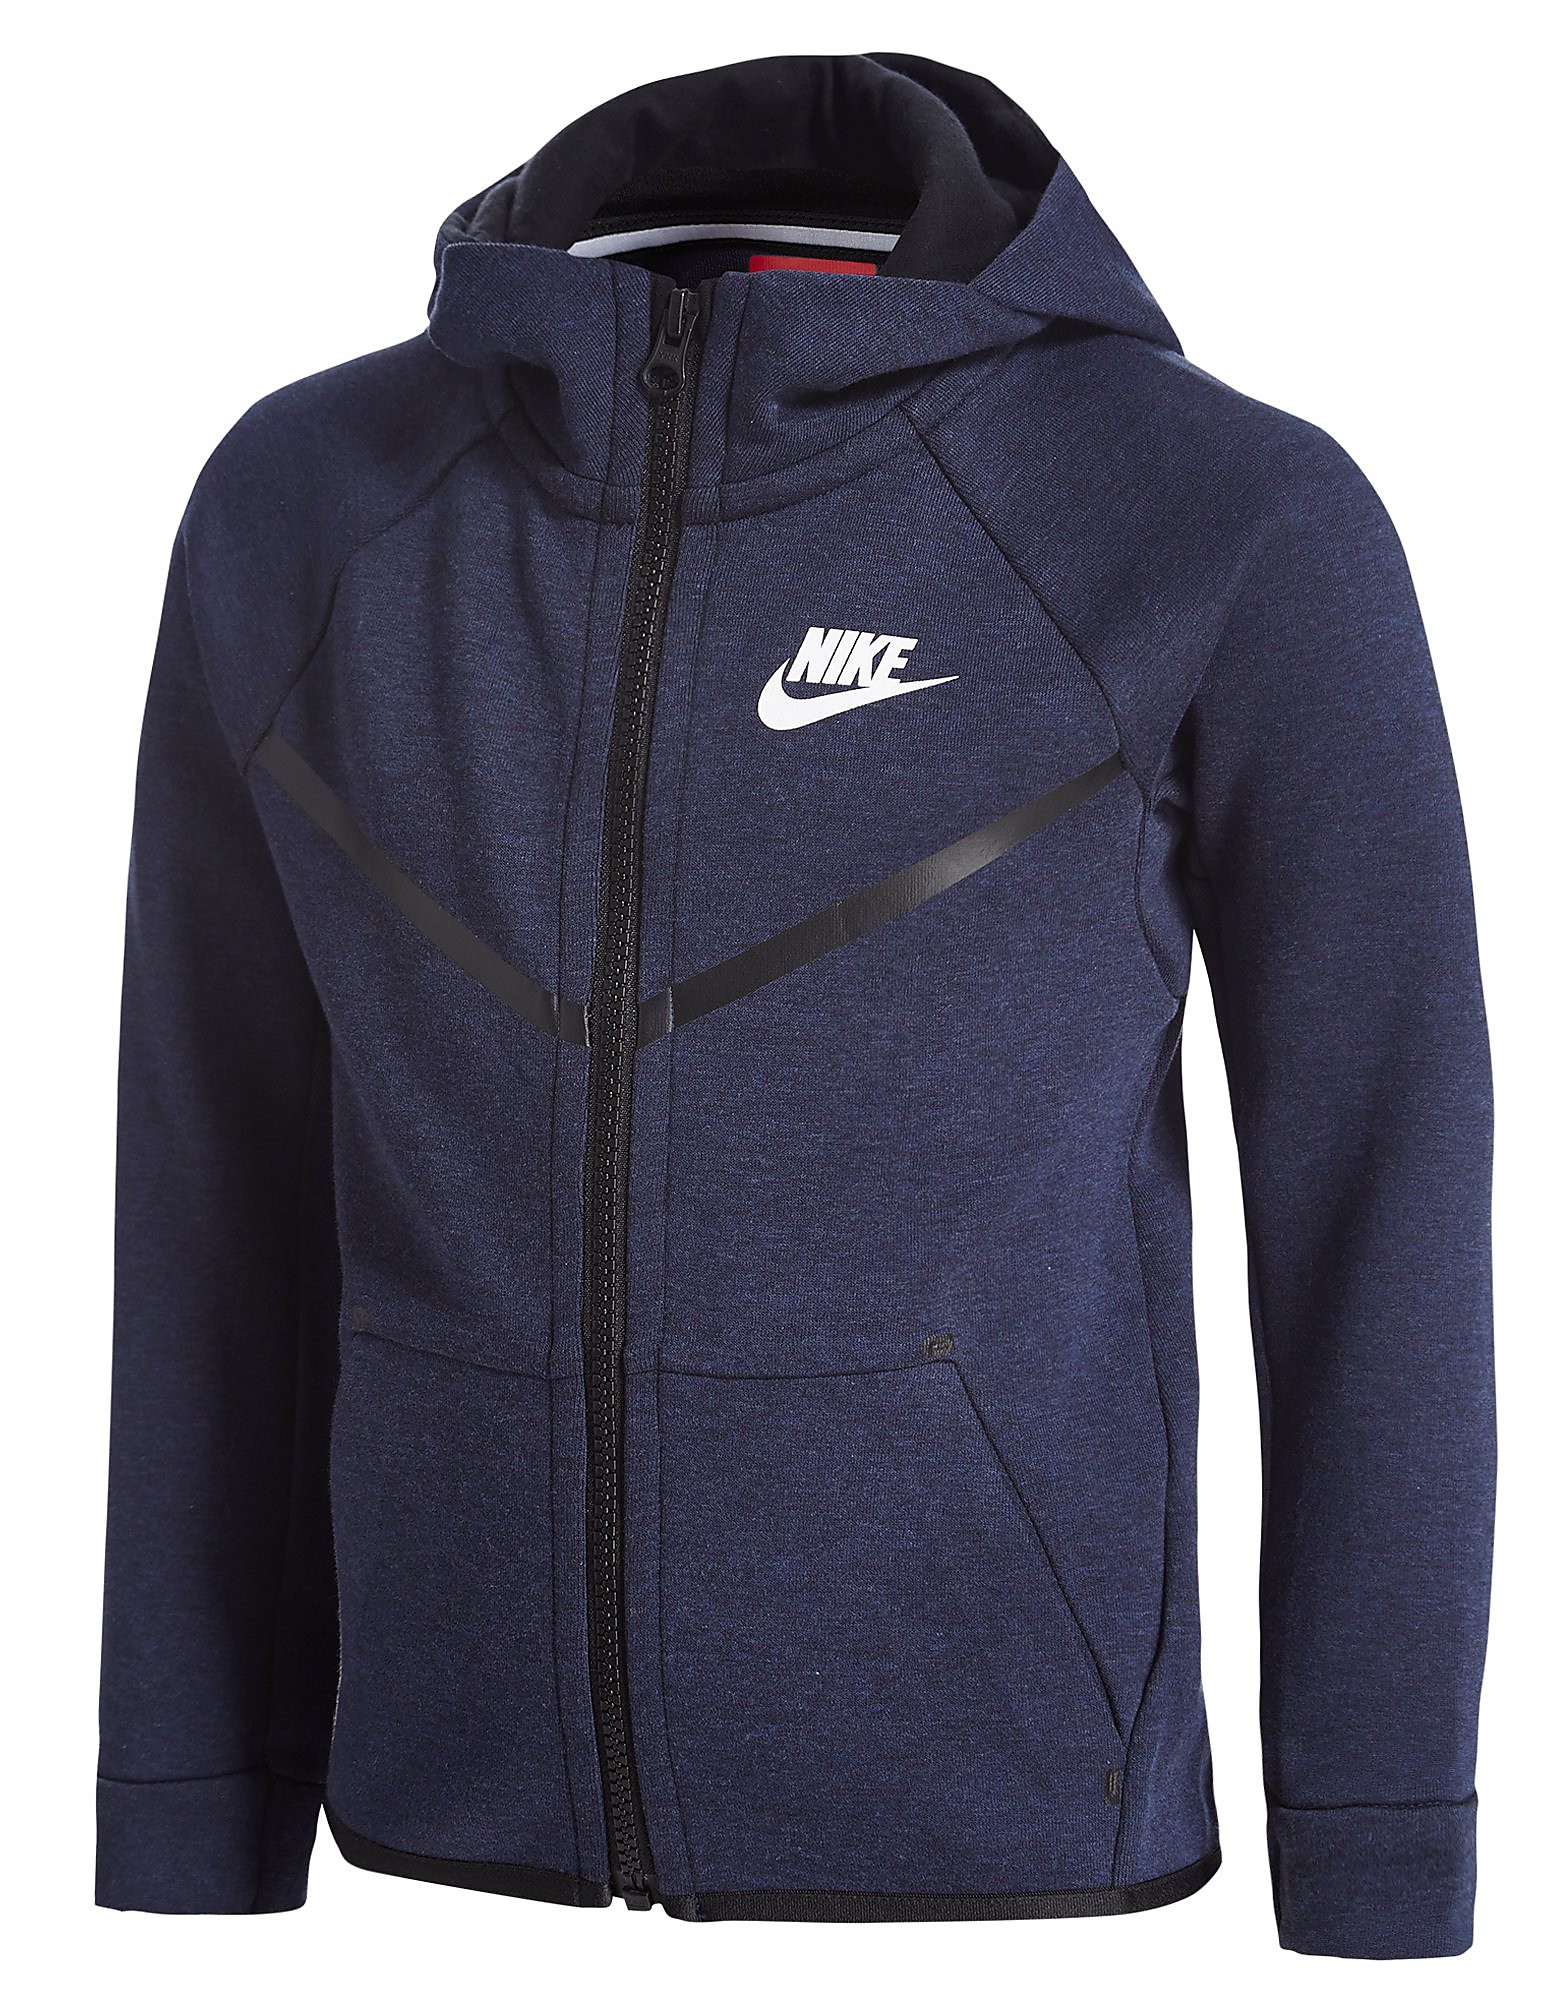 0a46eb20e8f Nike Tech Fleece Hoody Children - Navy Heather/Black - Kids - Sports ...